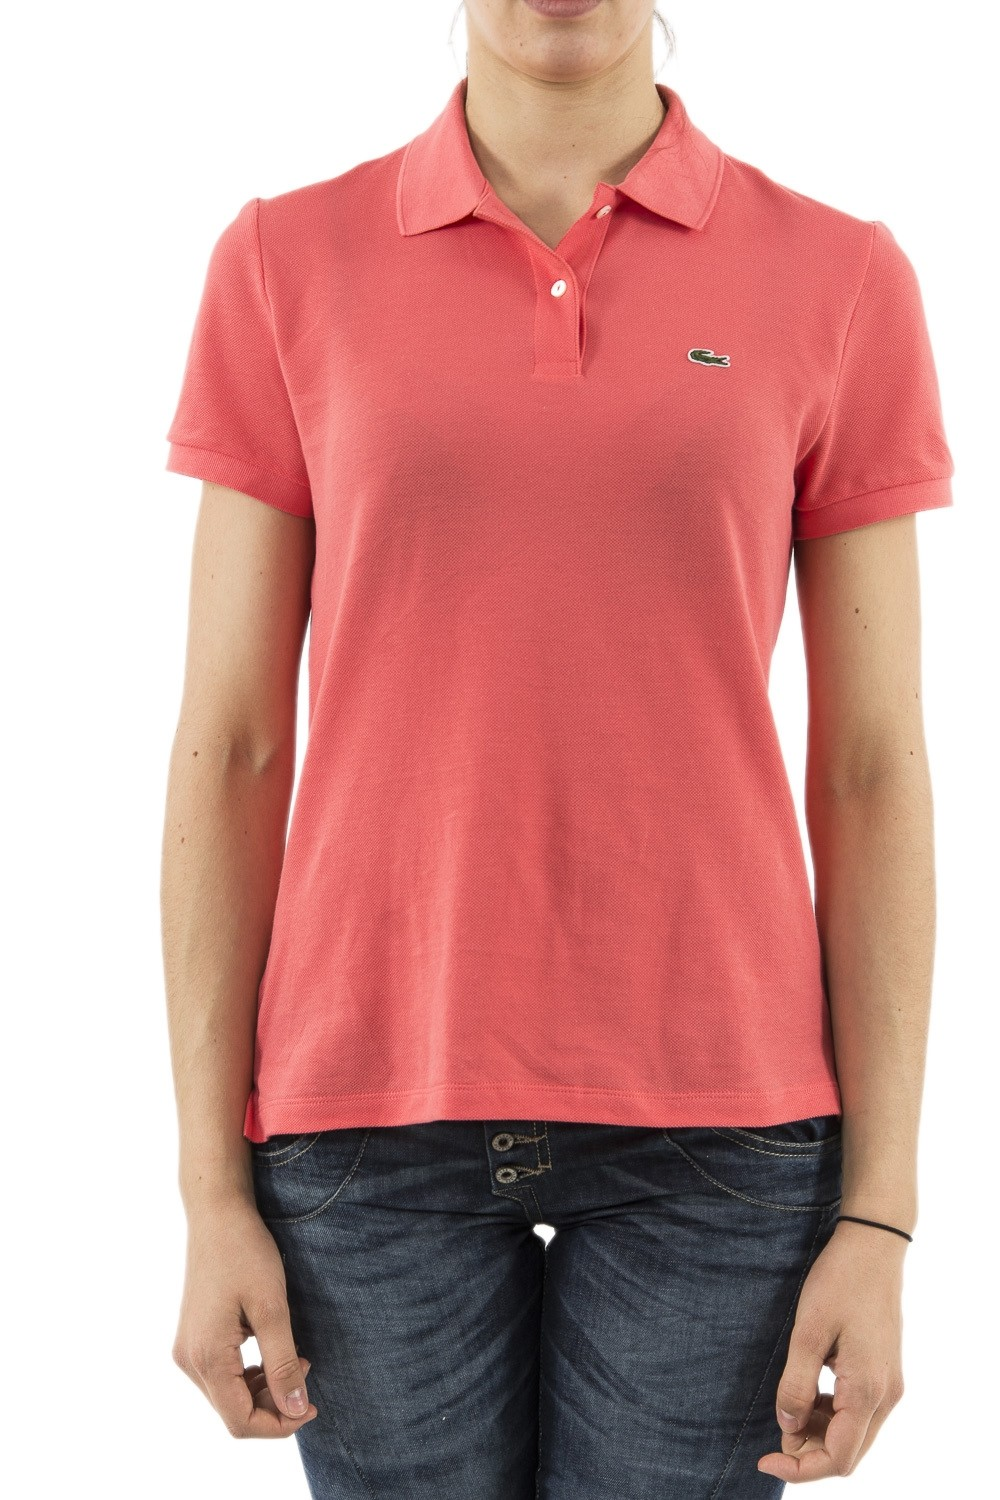 Polo PF7839 rose